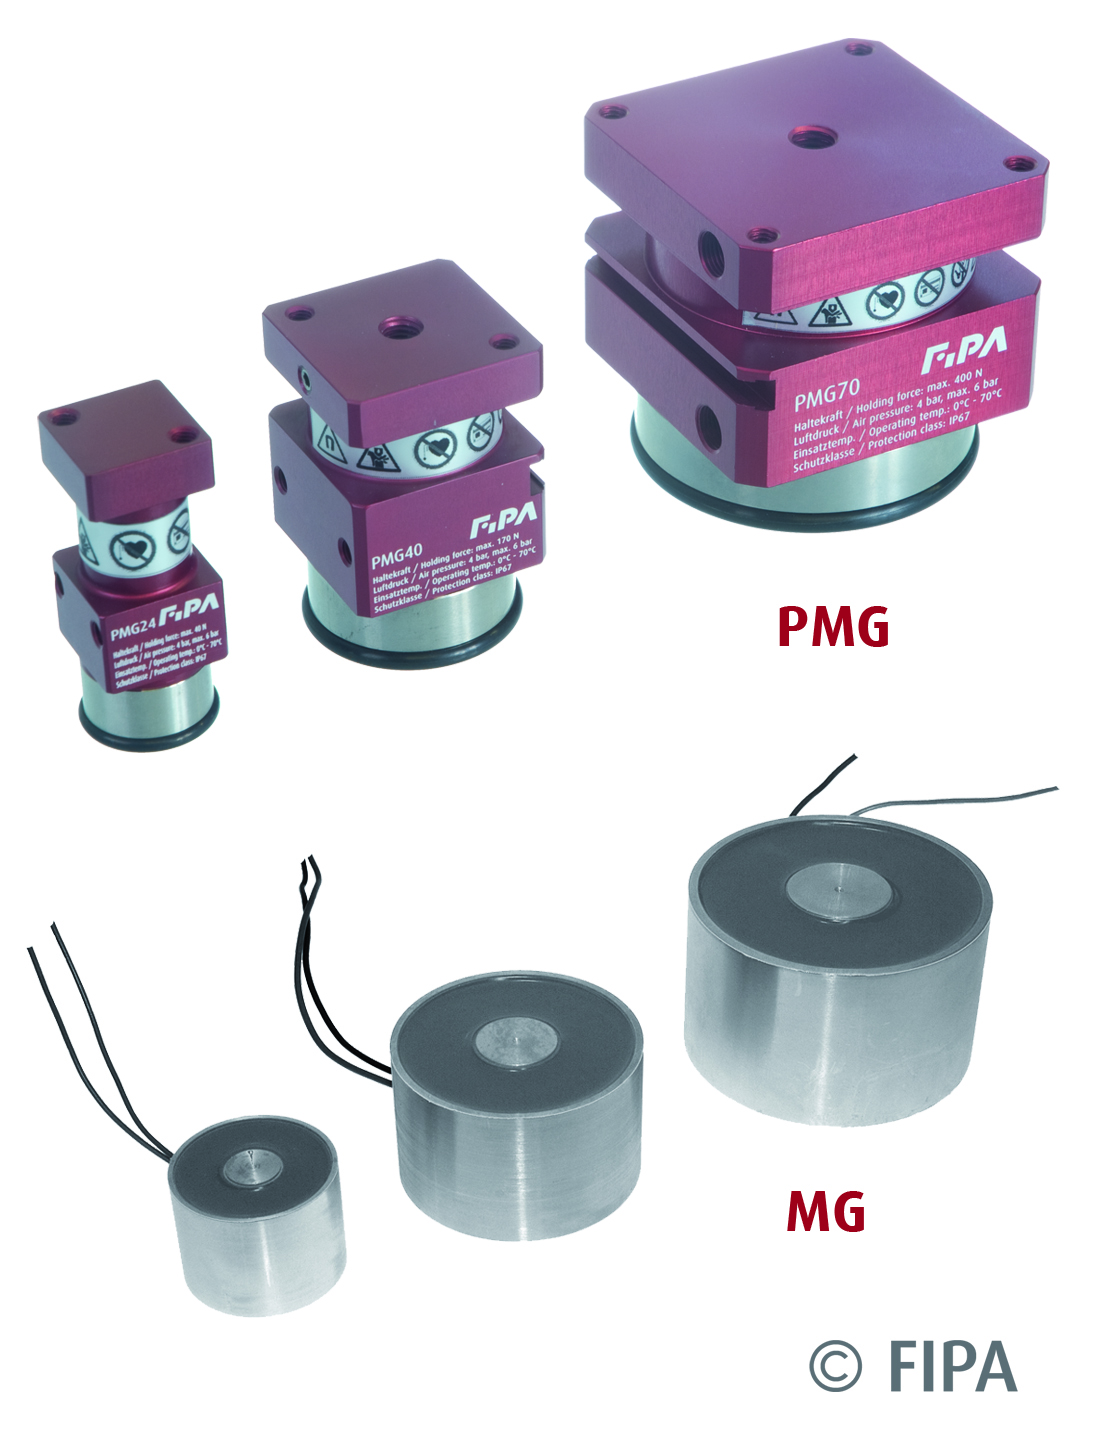 FIPA presents: Electrically and pneumatically controlled magnetic grippers